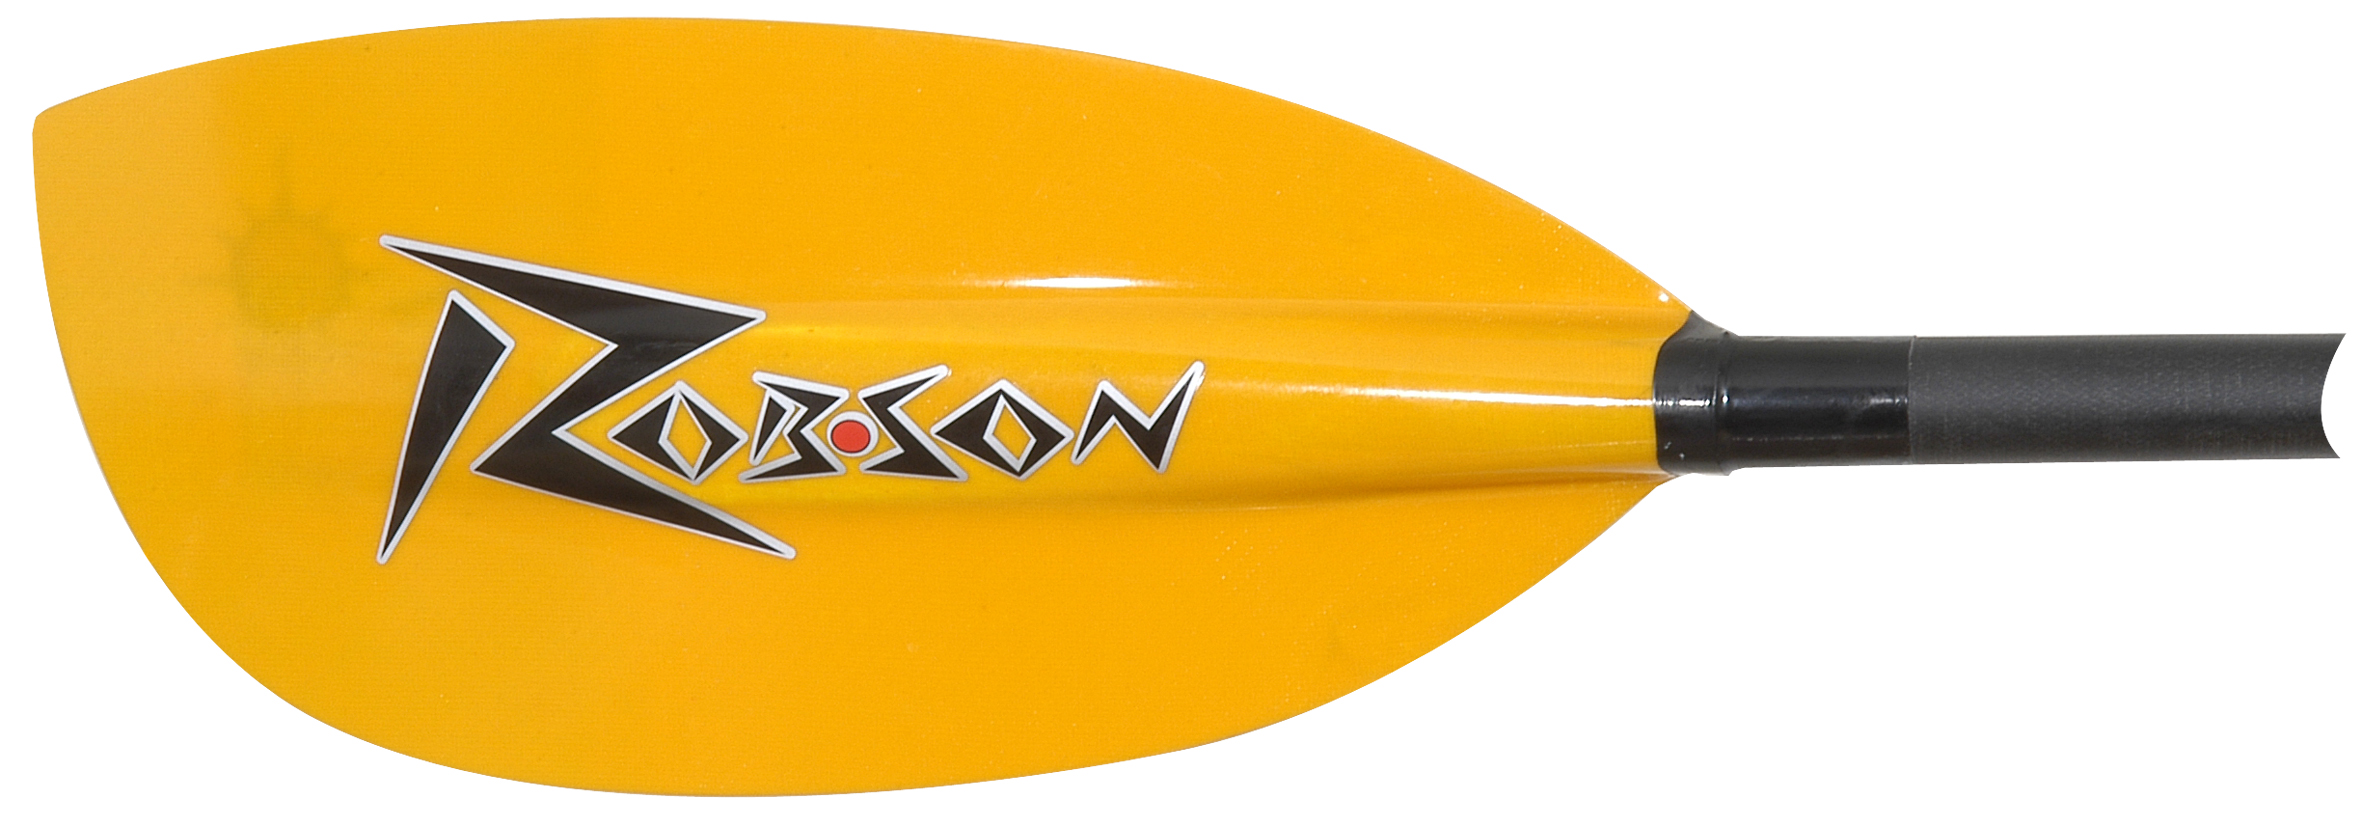 paddle – Robson Mystique blade